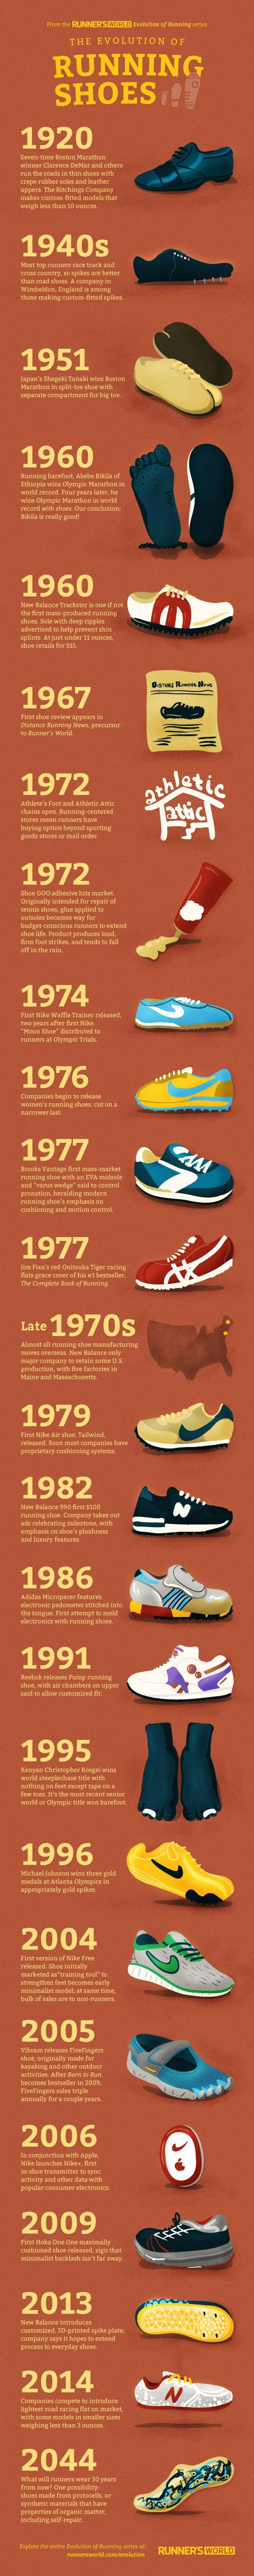 0c38261be2 A Brief History of the Running Shoe | Runner's World